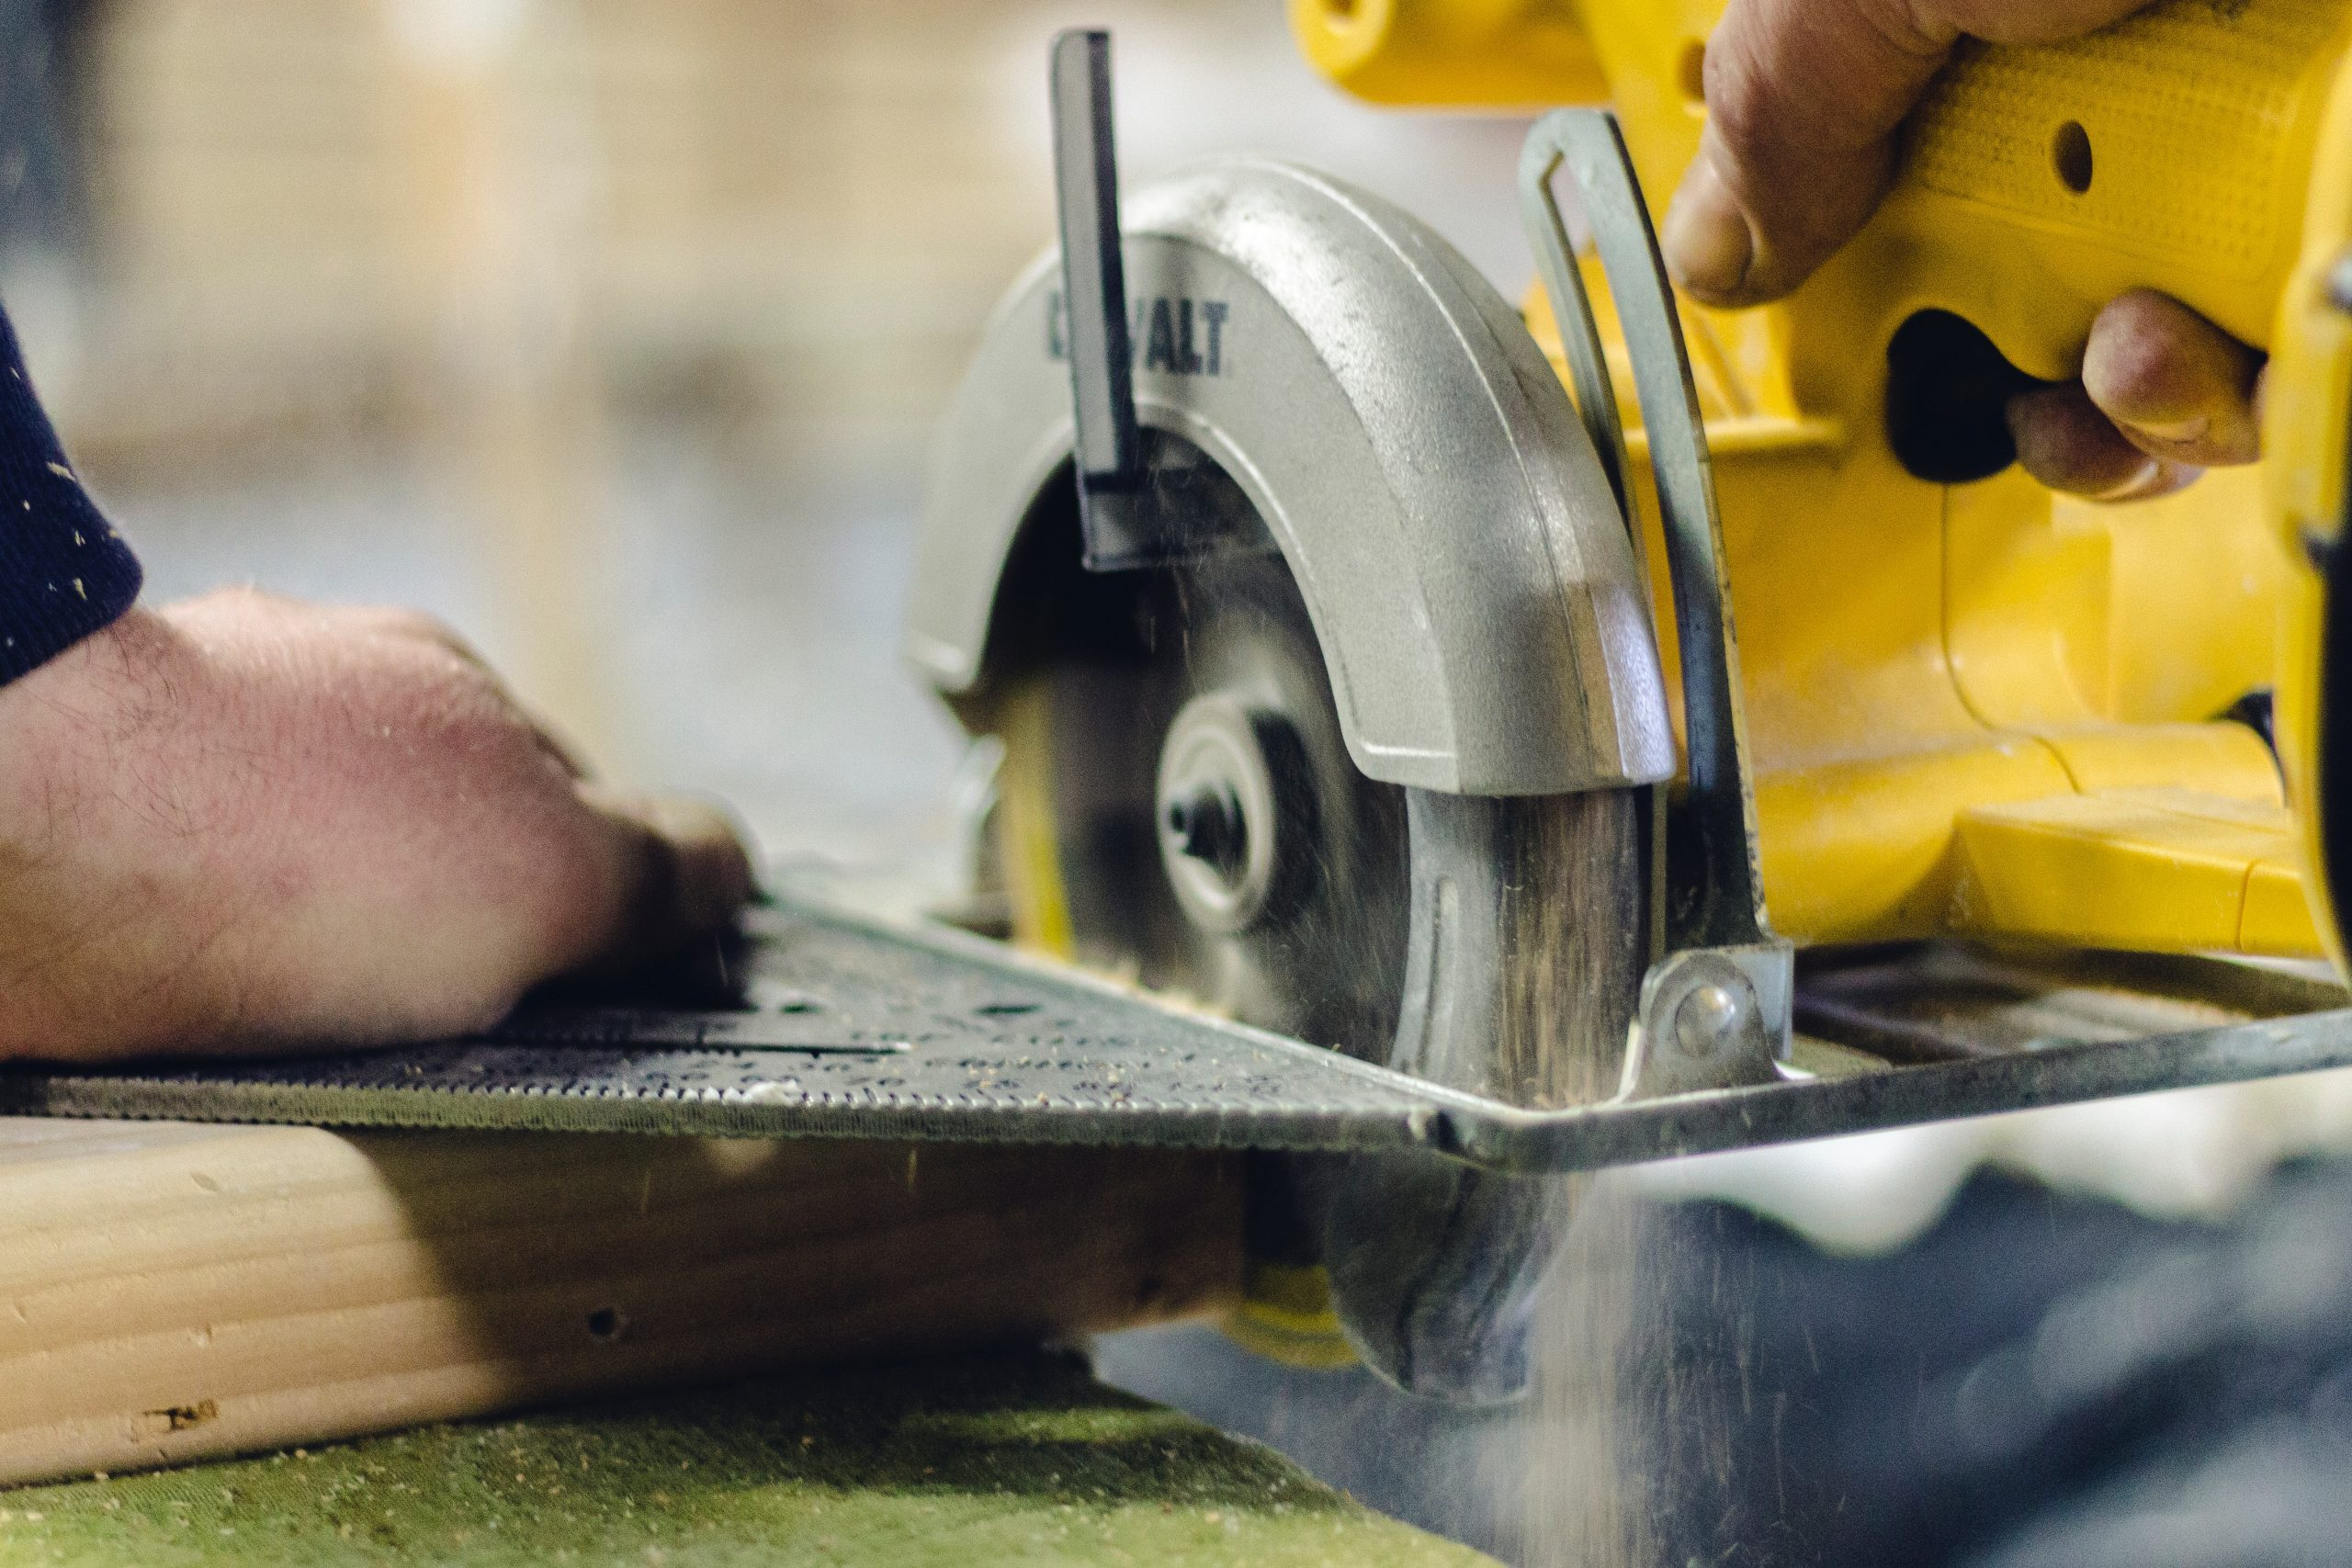 Building material costs